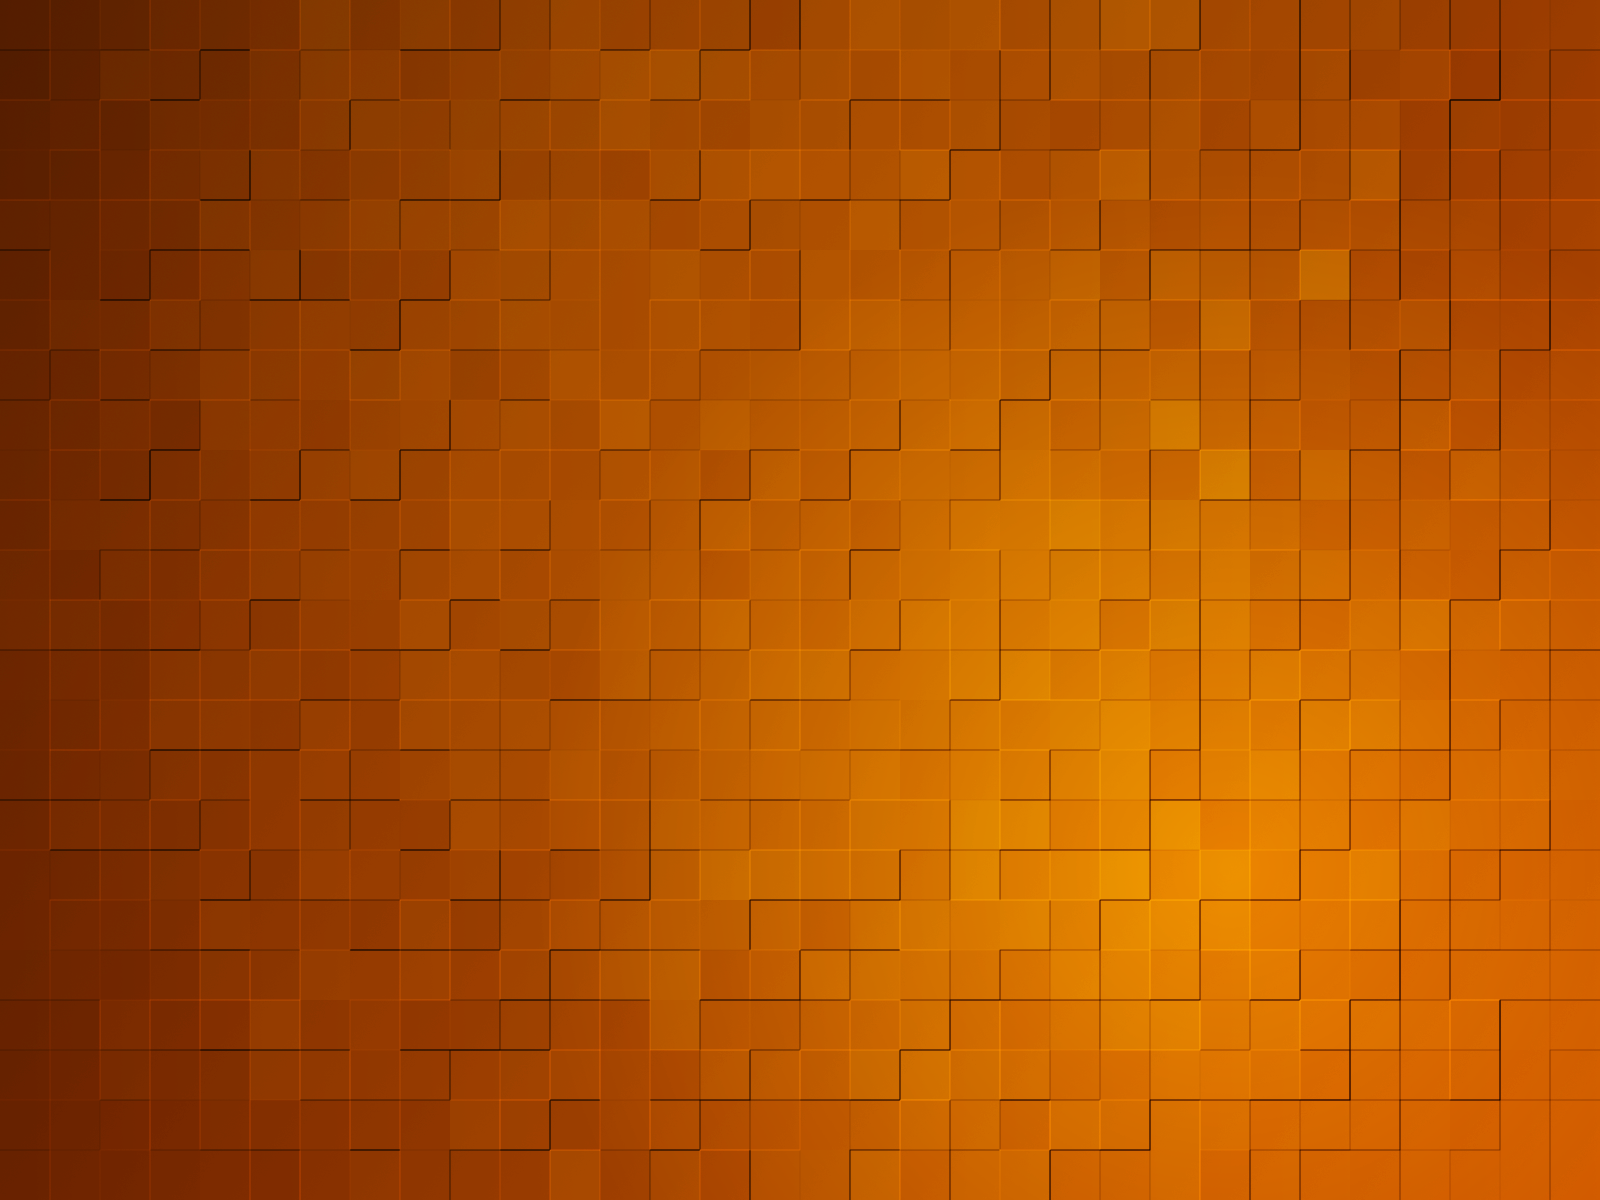 39088887, Orange Backgrounds, Tonja Kouba